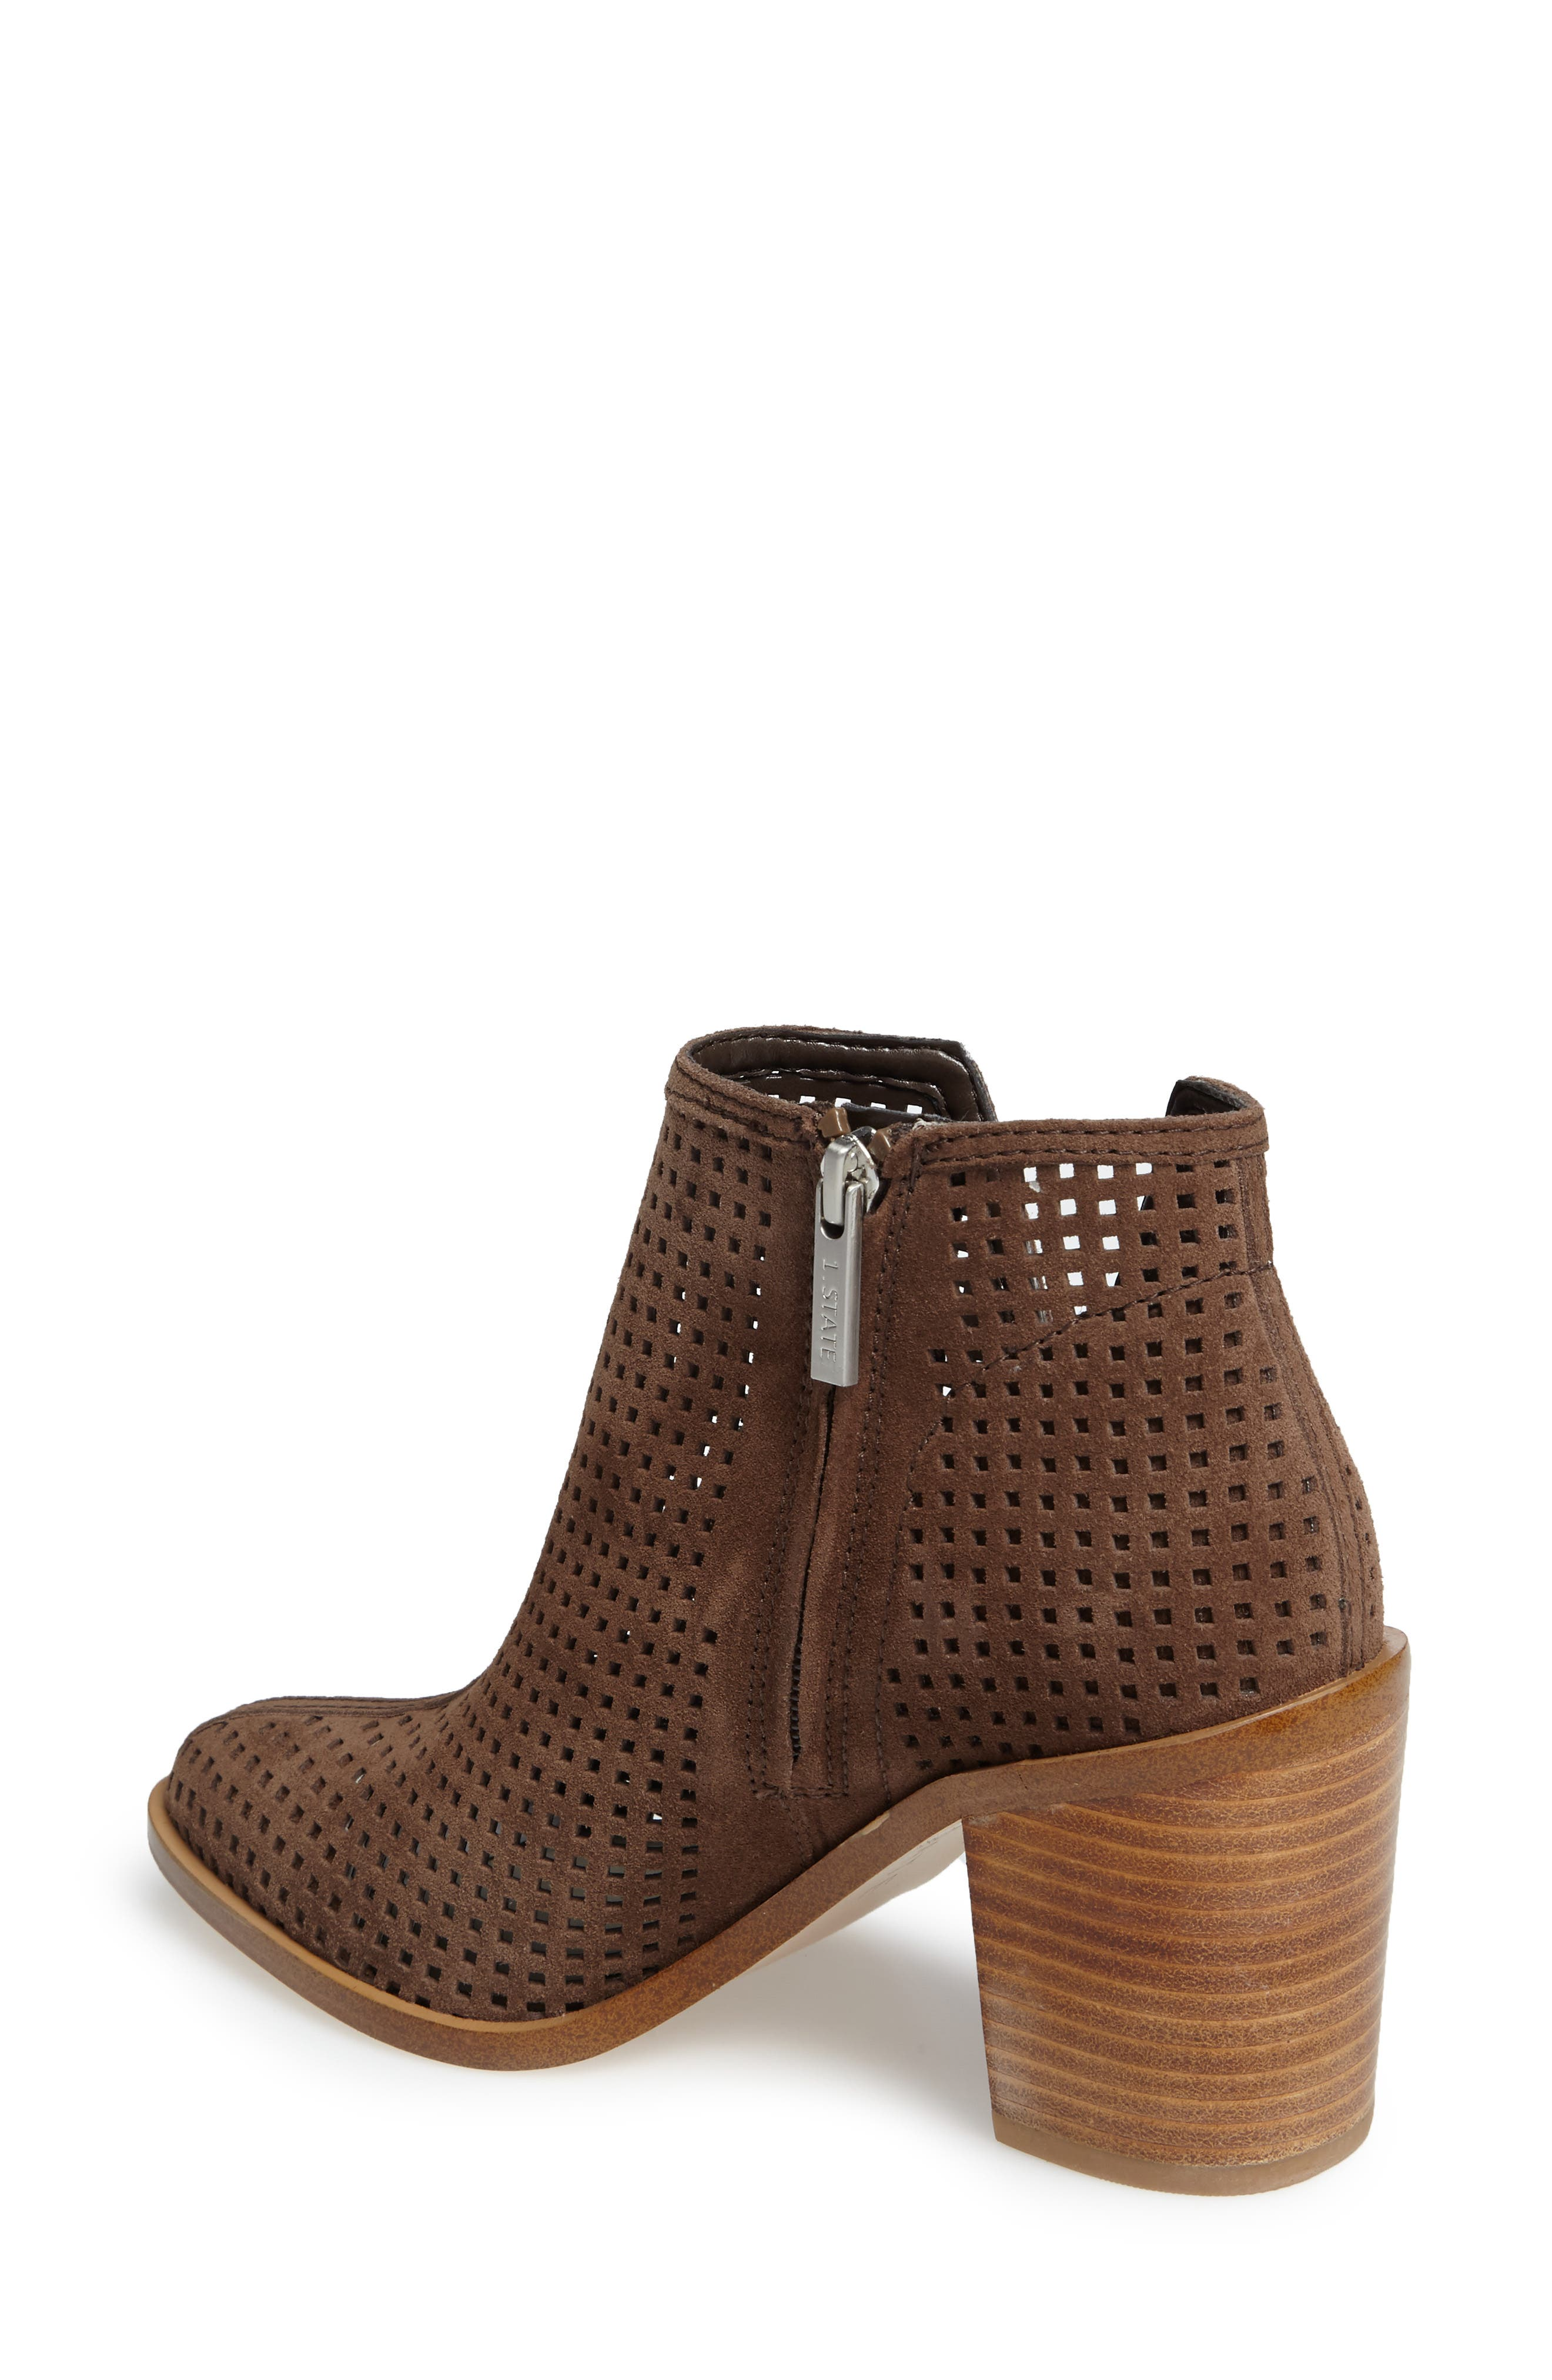 Alternate Image 2  - 1. STATE Larocka Perforated Bootie (Women)